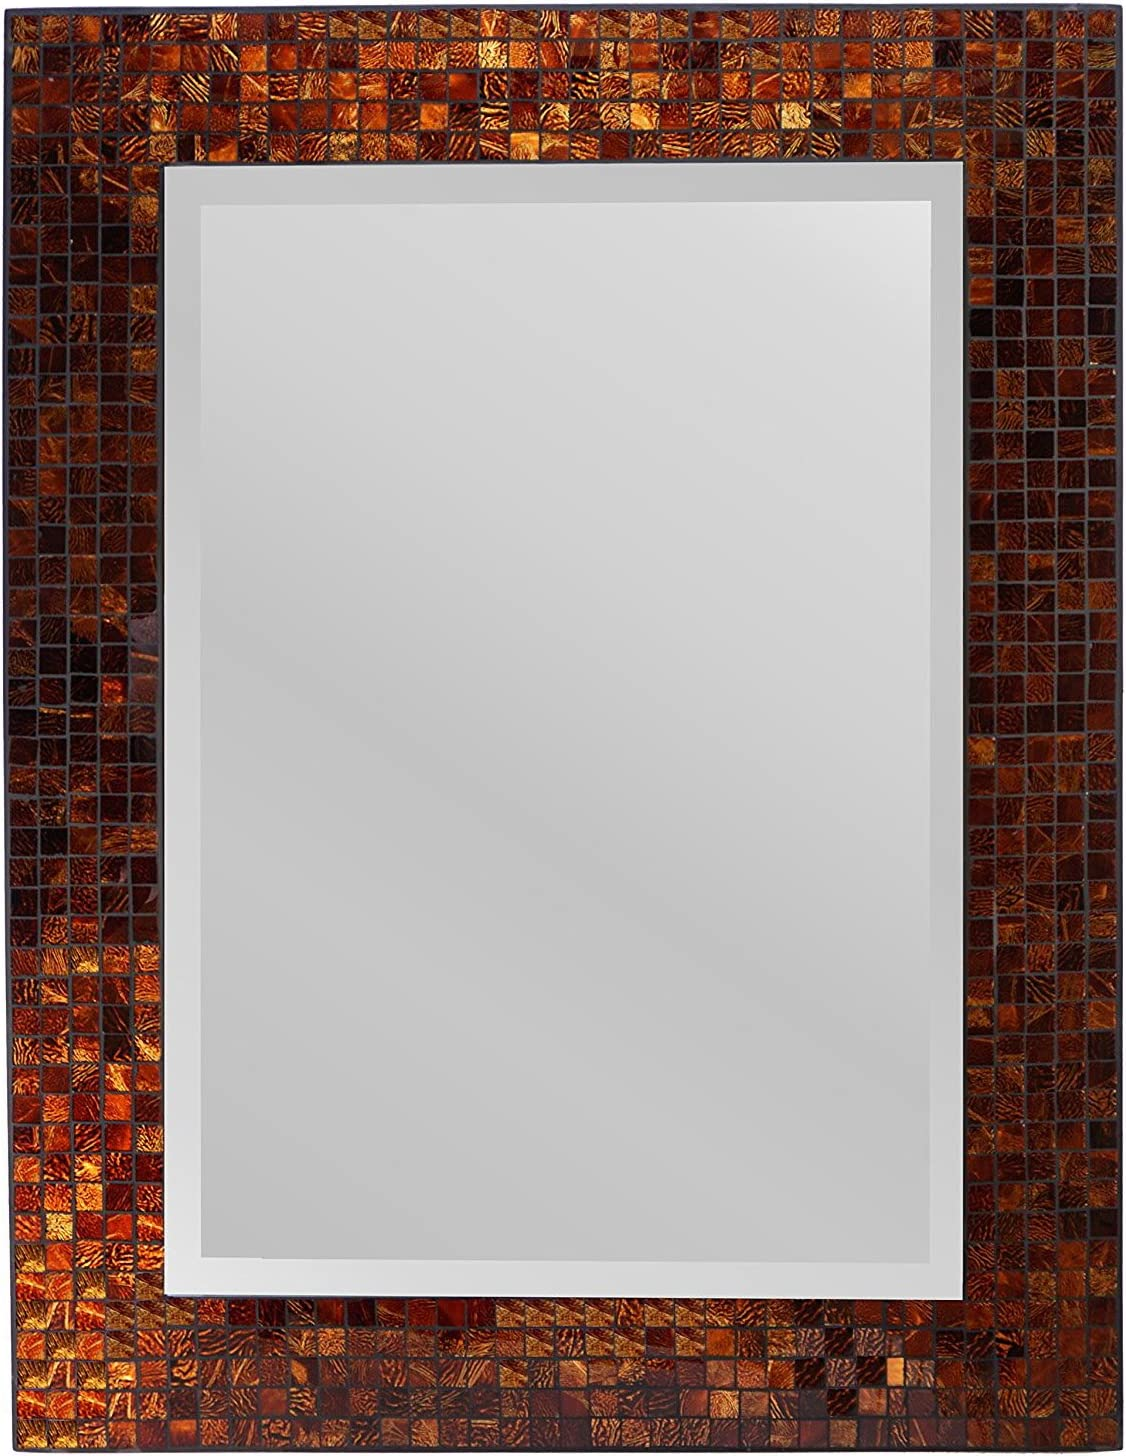 """Lulu Decor, Decorative Handmade Amber Rectangle Mosaic Beveled Wall Mirror, Frame Measures 31"""" x 23.5"""", Beveled Mirror Measures 24"""" x 15.5"""" Perfect for Housewarming Gift. (LP307)"""